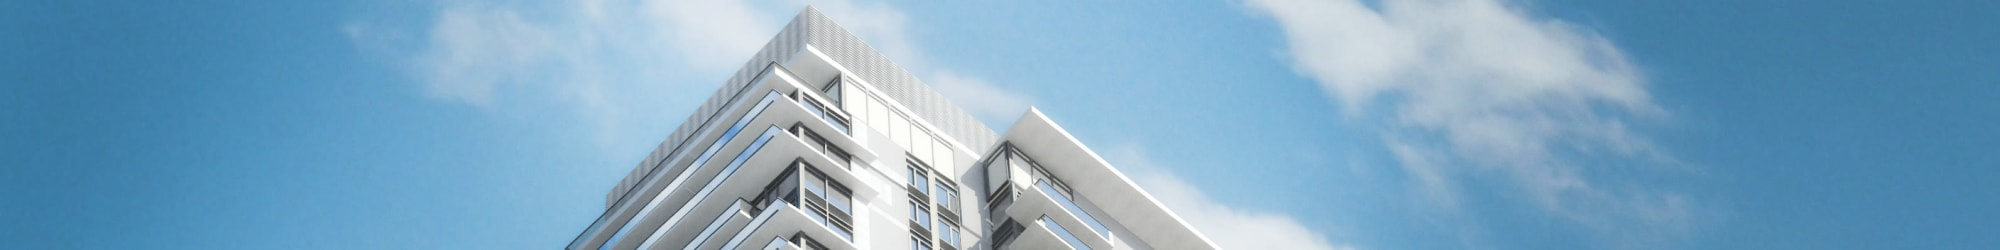 Frequently asked questions at Parkview Development in Burnaby, British Columbia